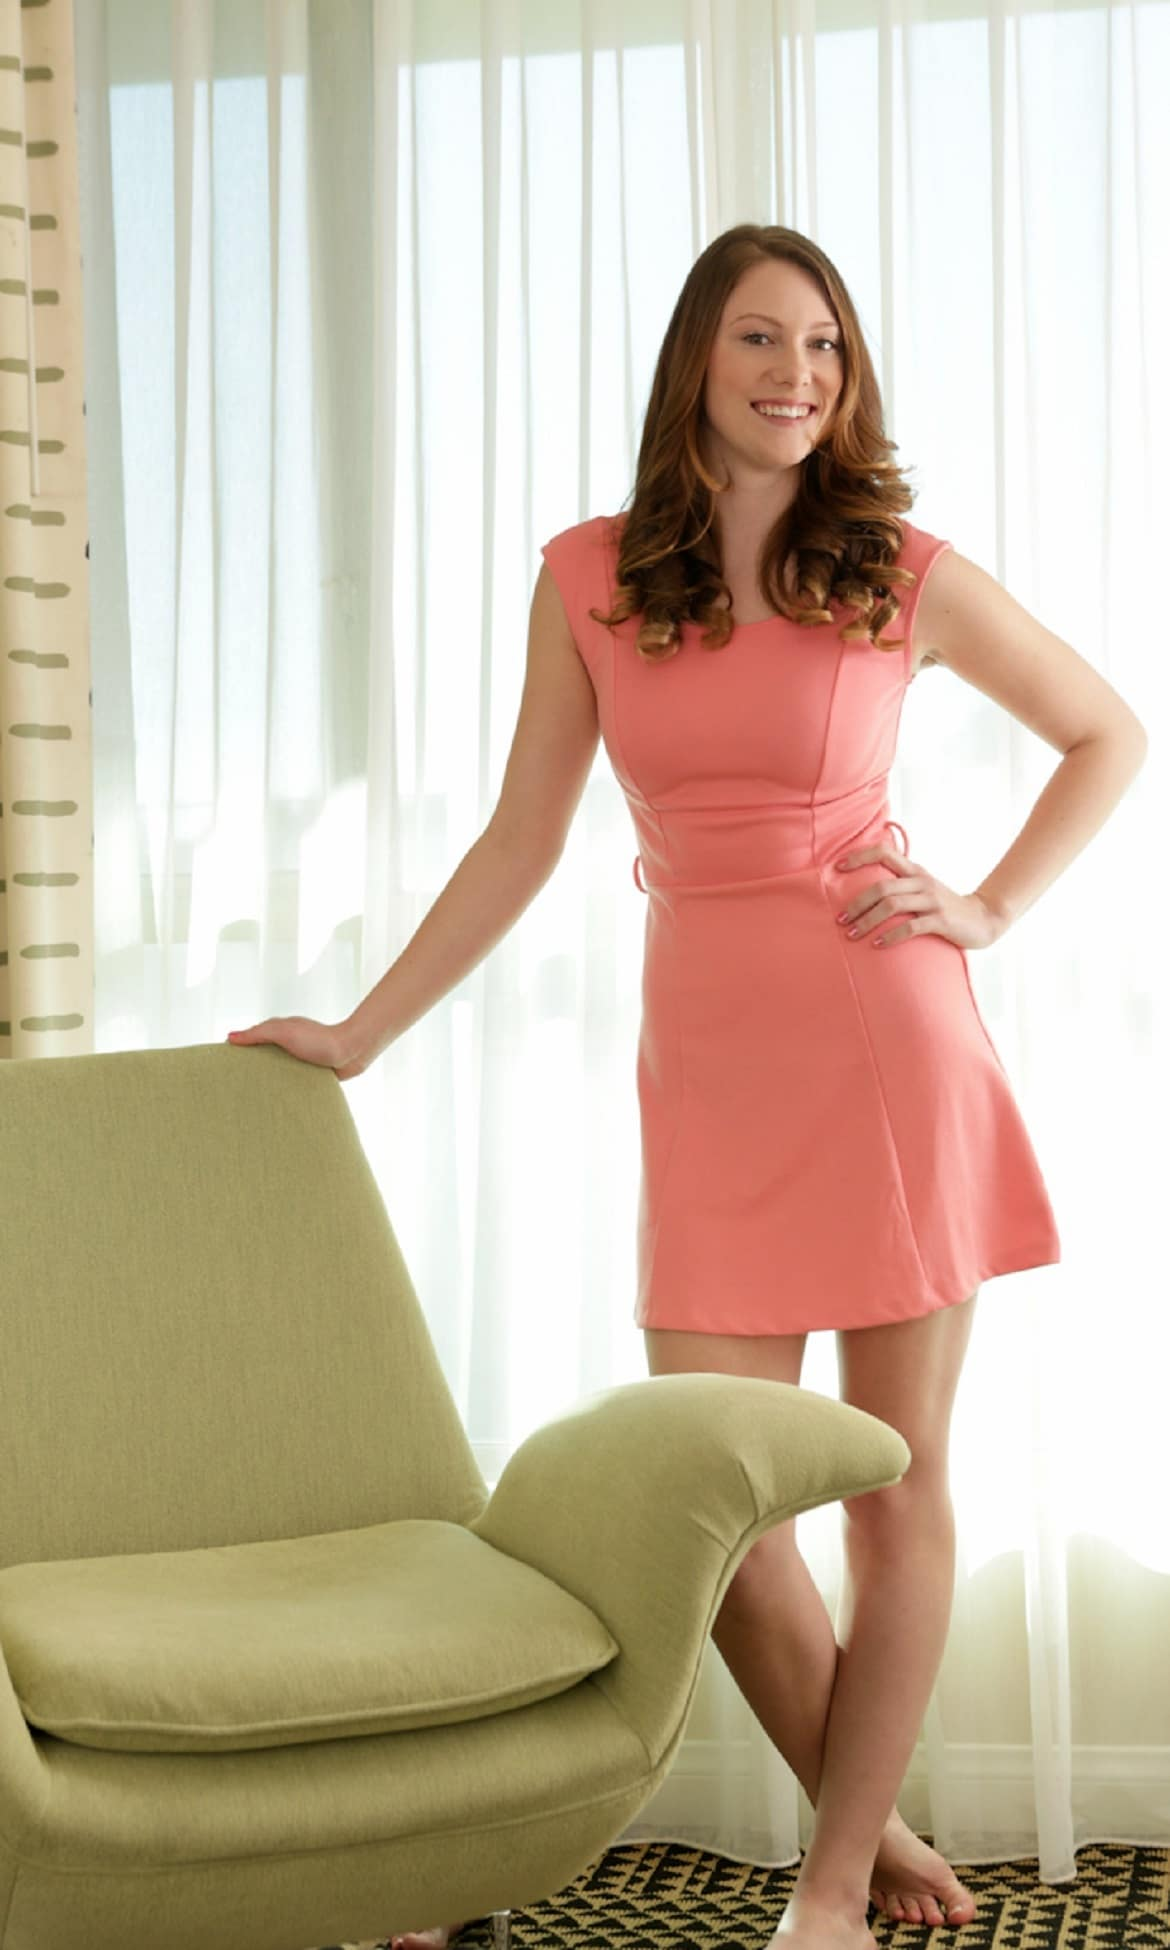 Beautiful brunette woman posing bare feet in a short pink dress smiling and standing up with her hand on her waist